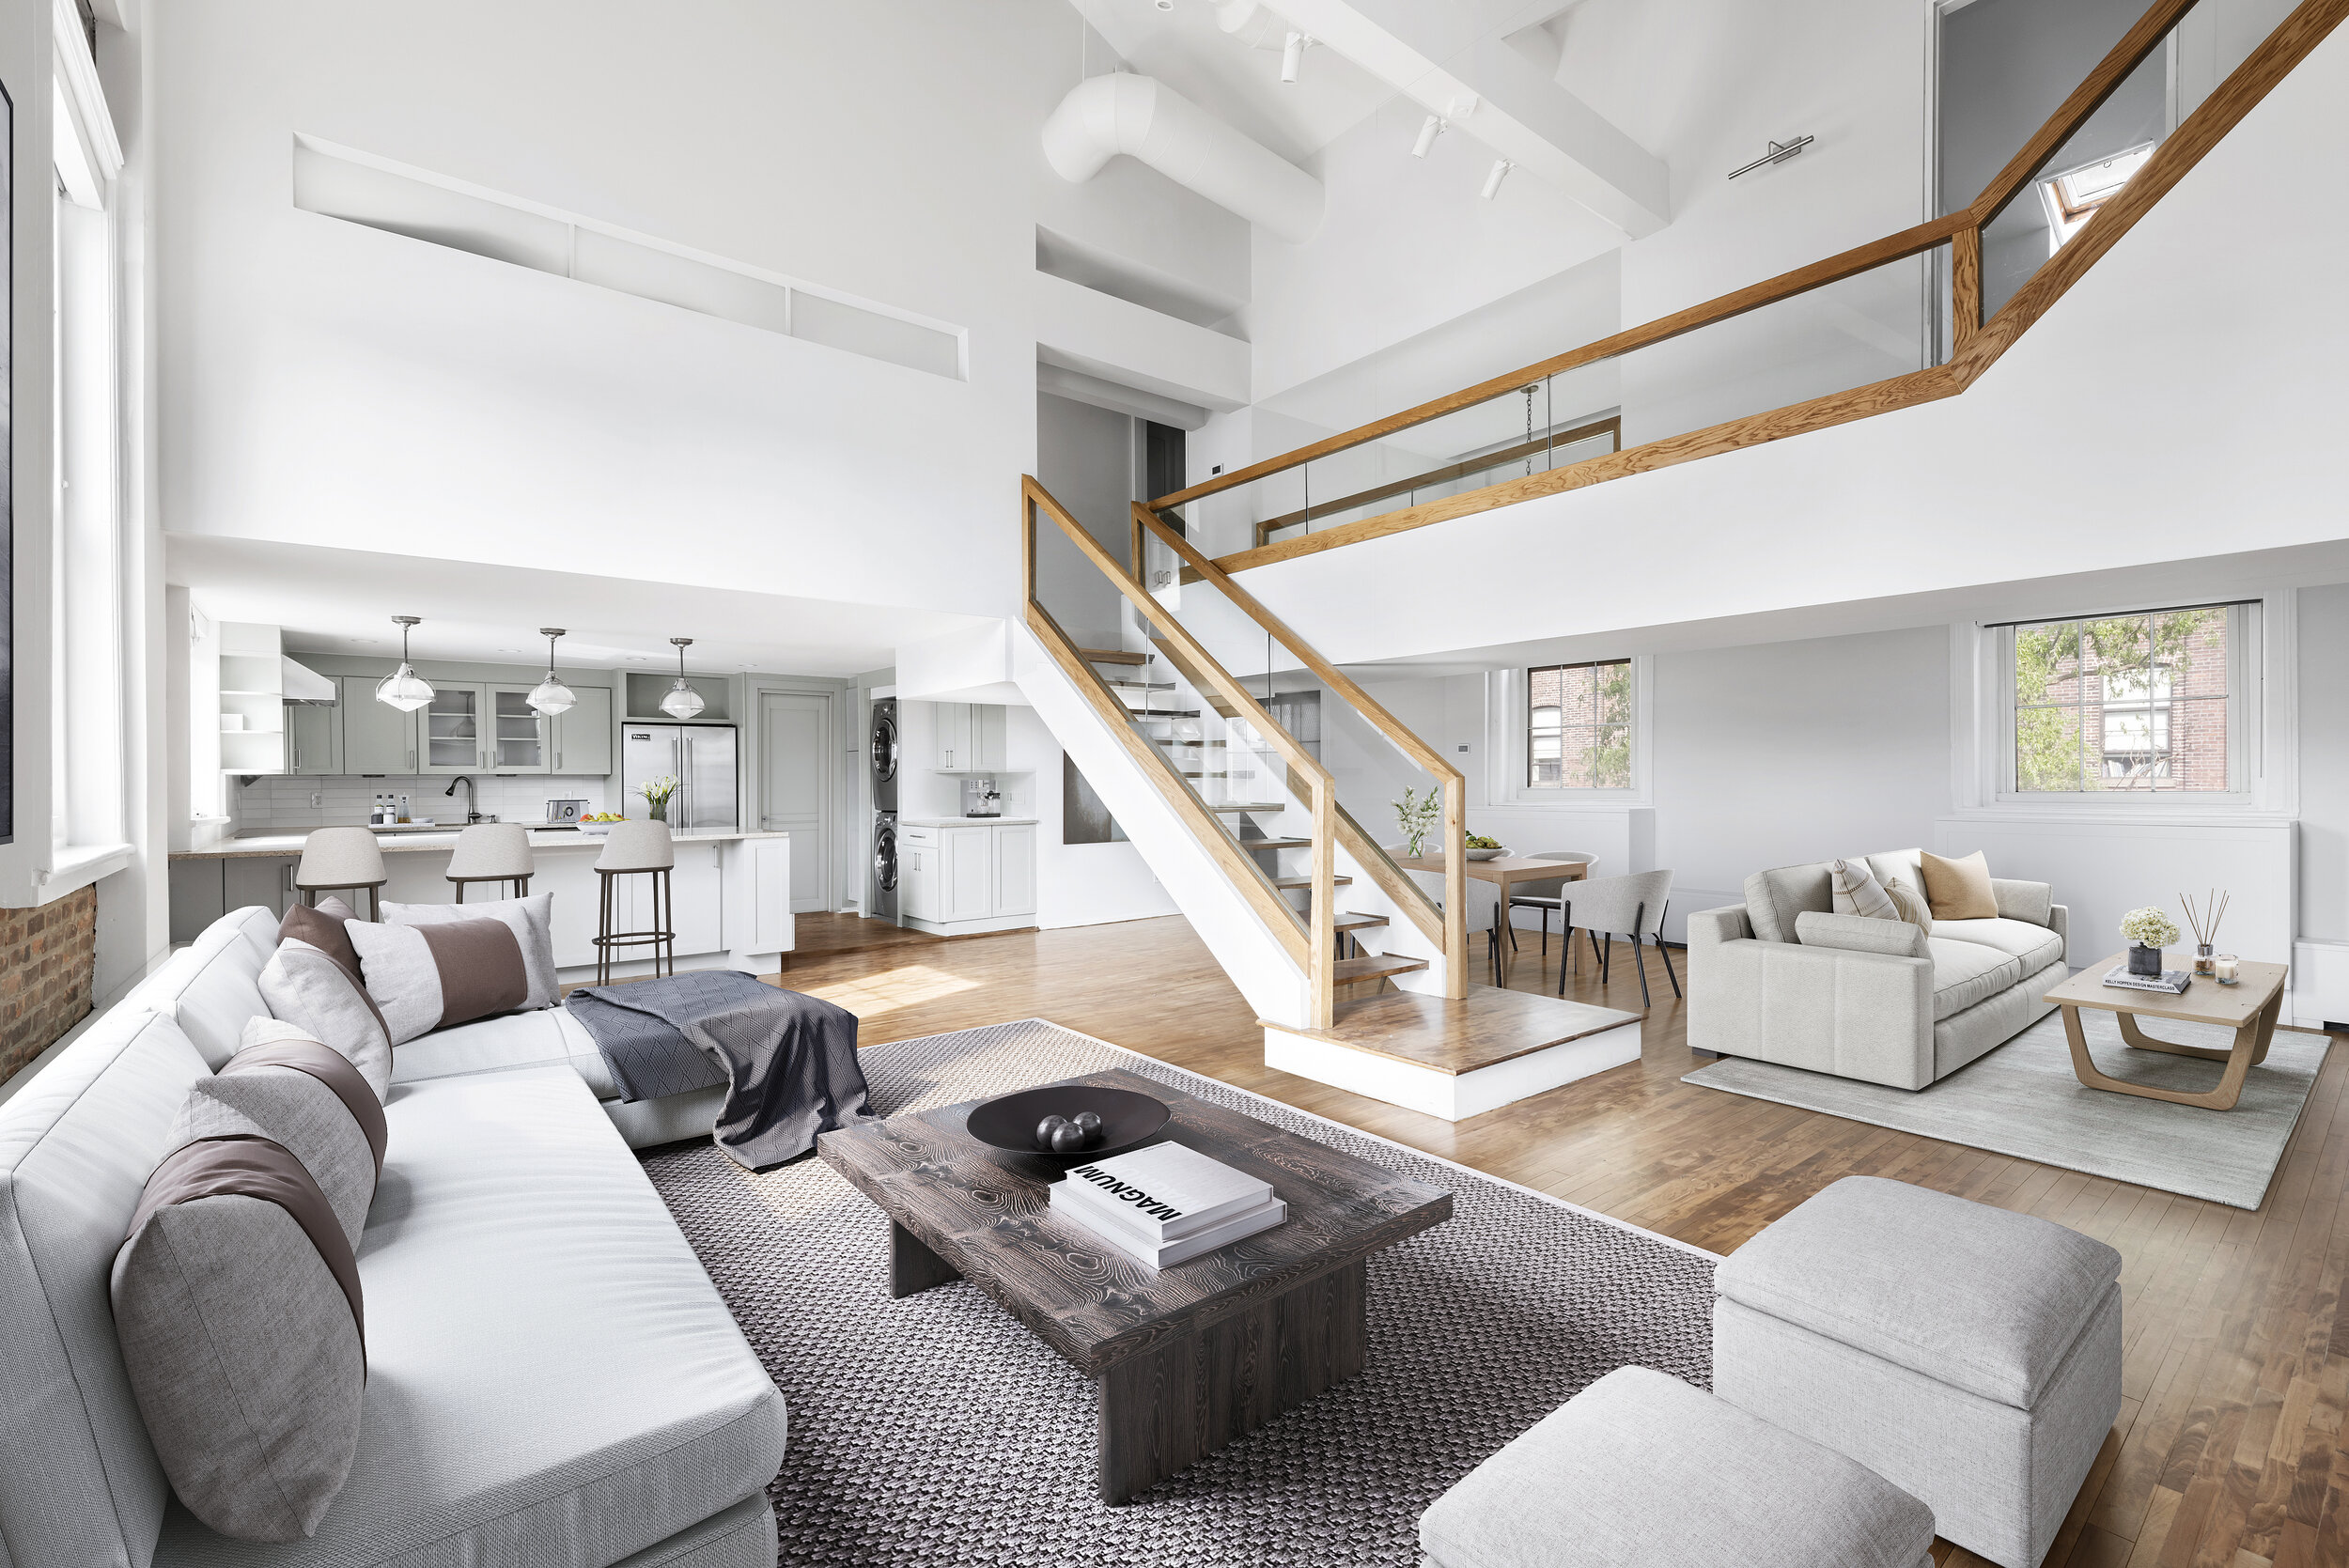 The custom-designed timber and glass staircase is a warm and modern focal point of the loft.